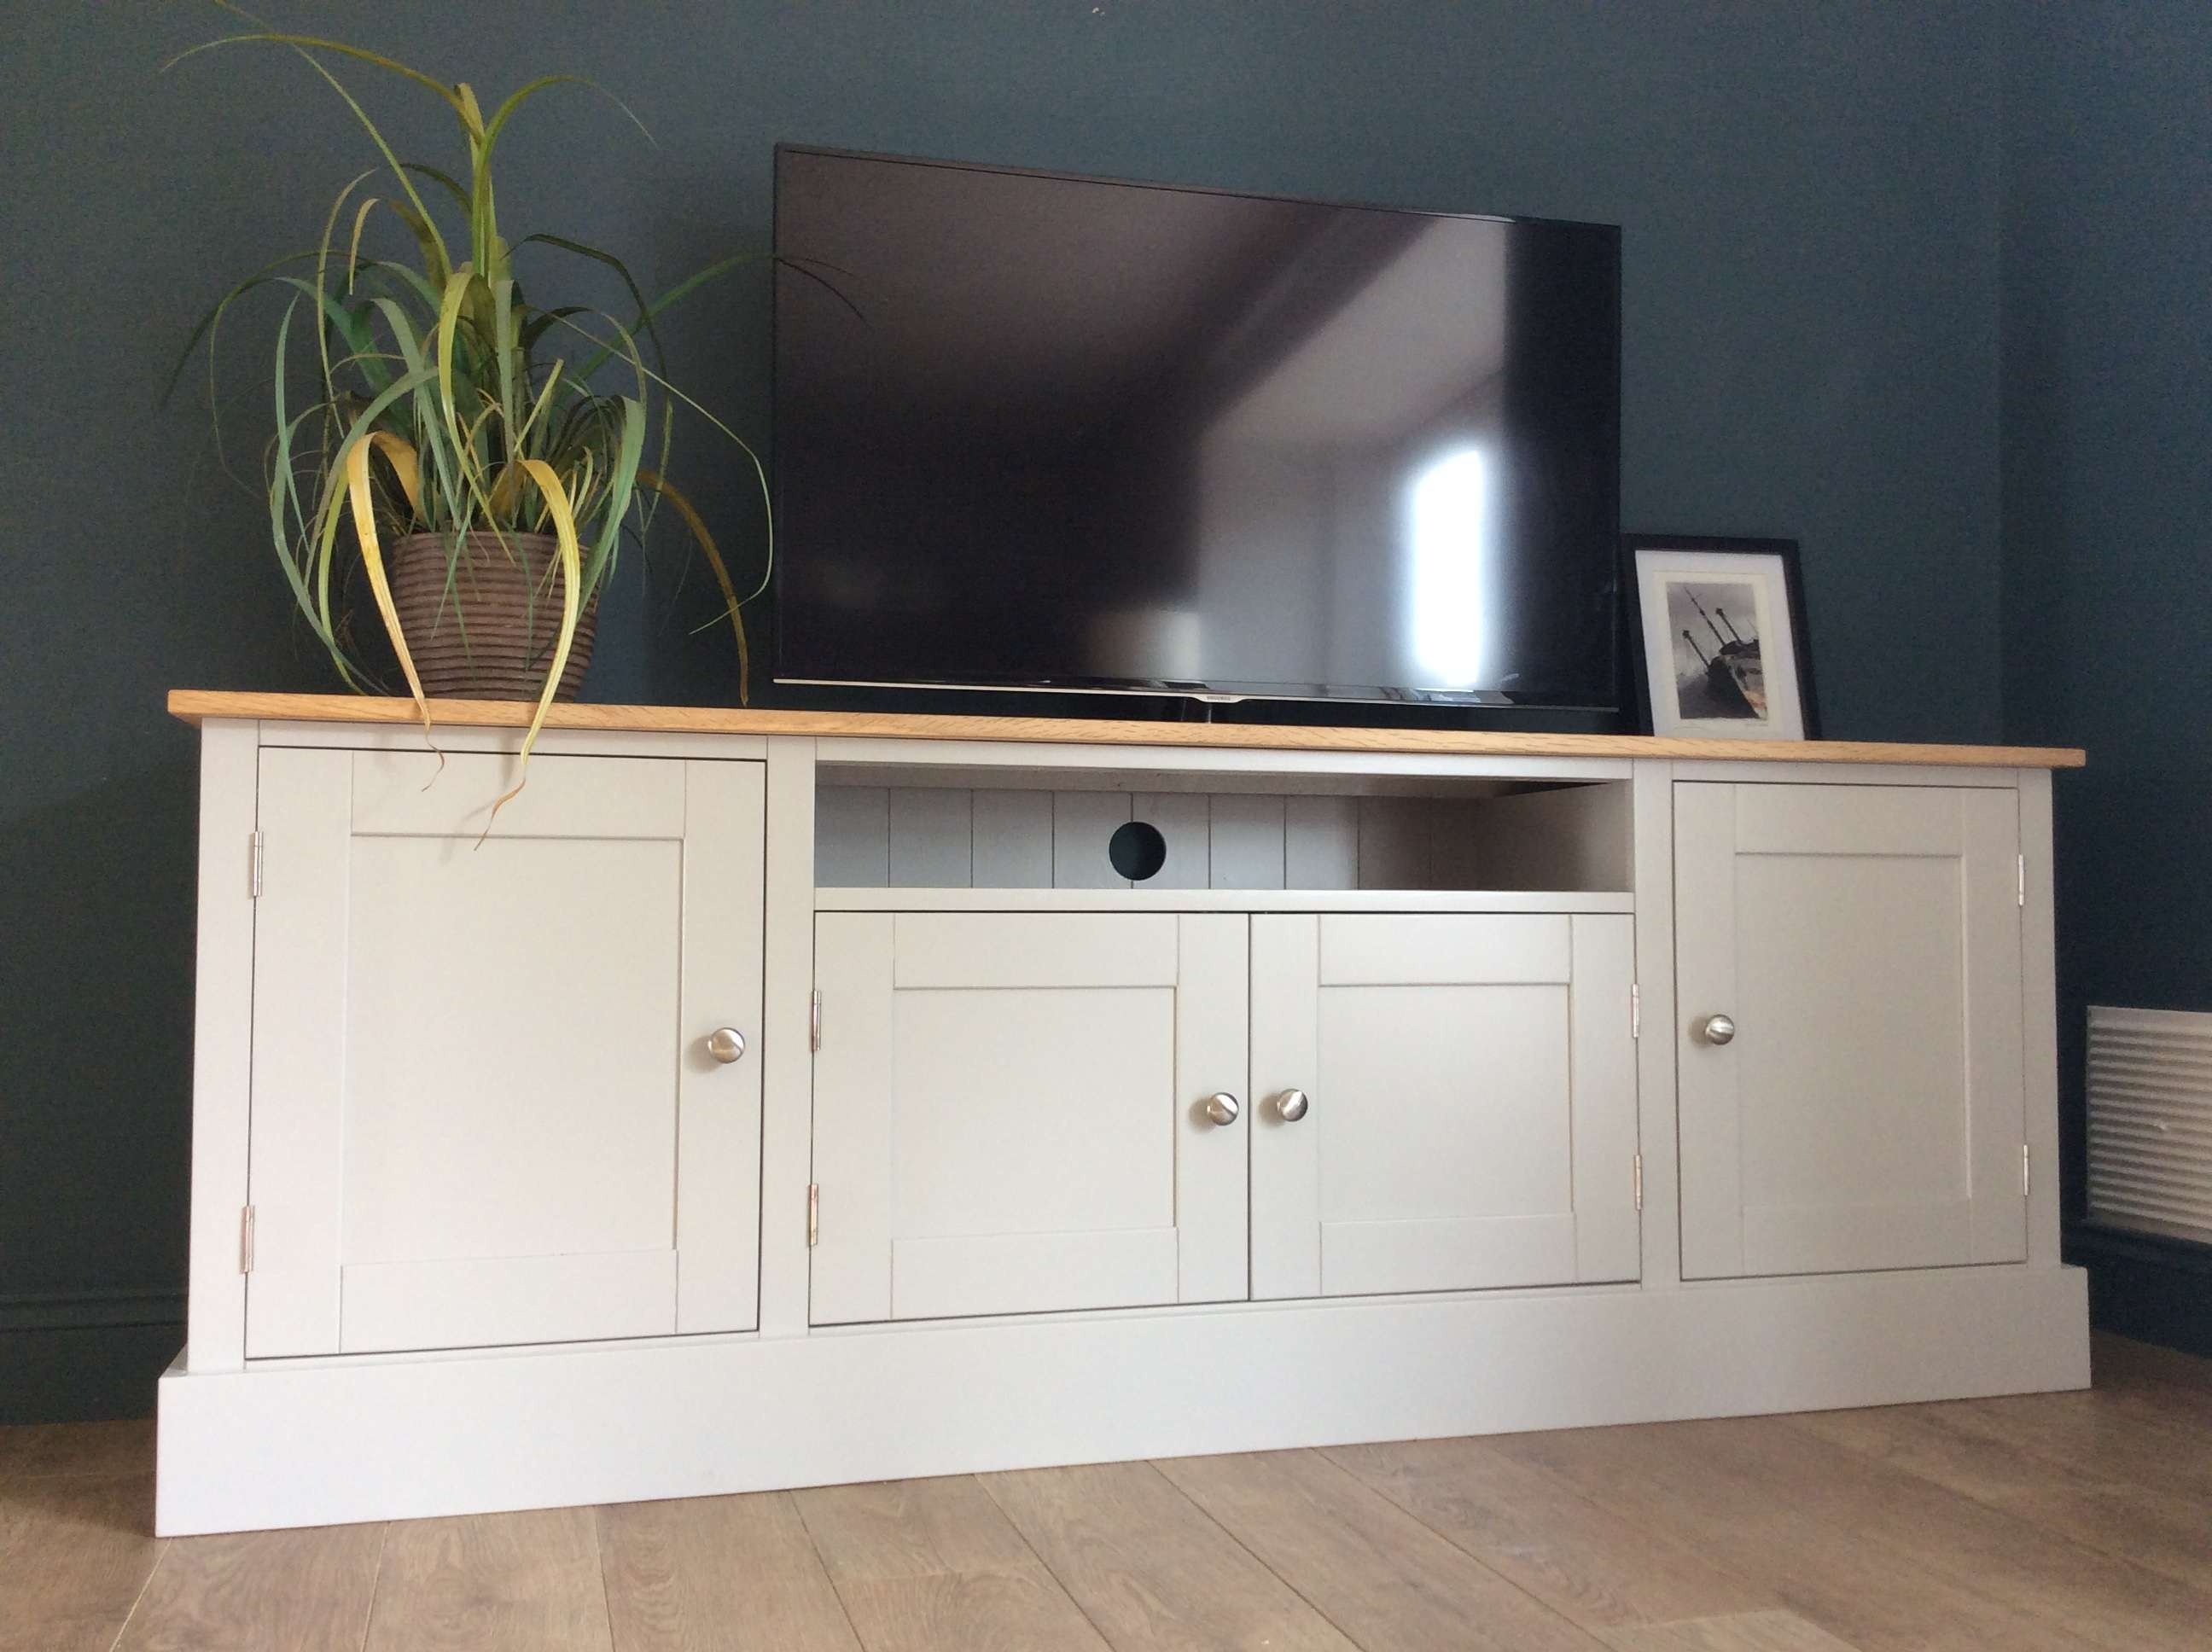 6Ft Solid Pine & Oak Tv Cabinet – Nest At Number 20 Pertaining To Solid Pine Tv Cabinets (View 1 of 20)